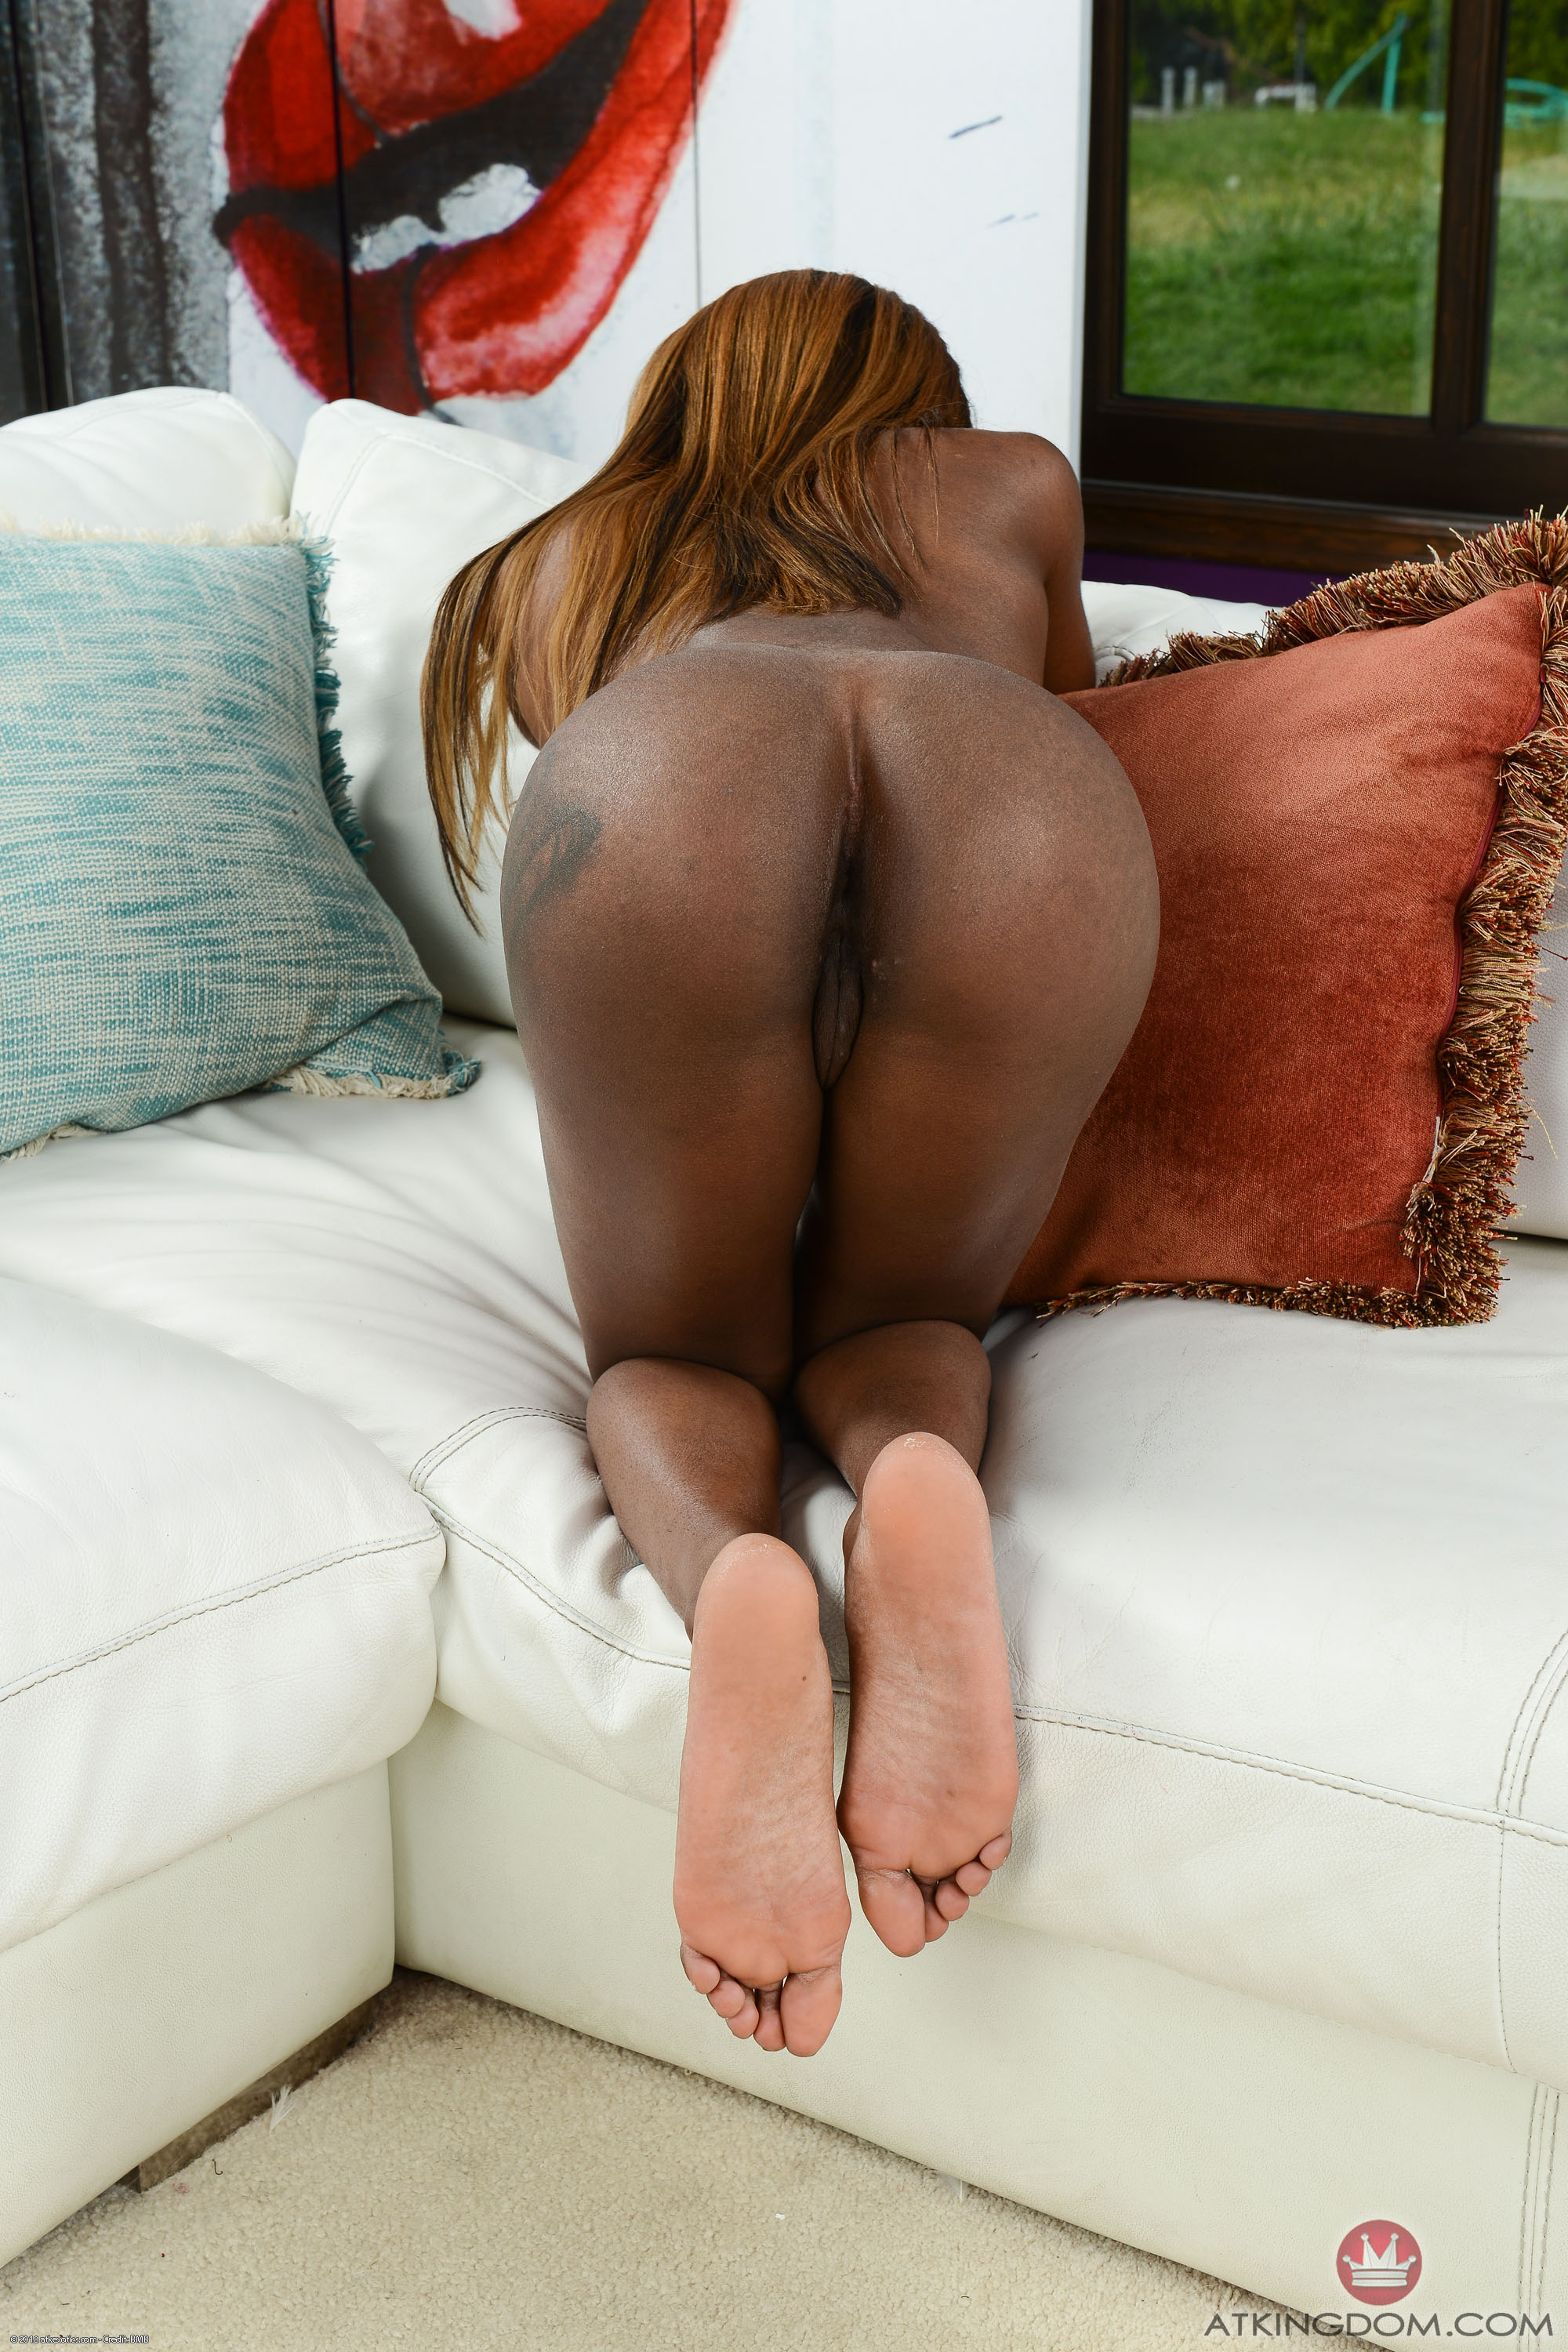 18 year old hairy pussy fucked while playing ps3 - 2 part 5